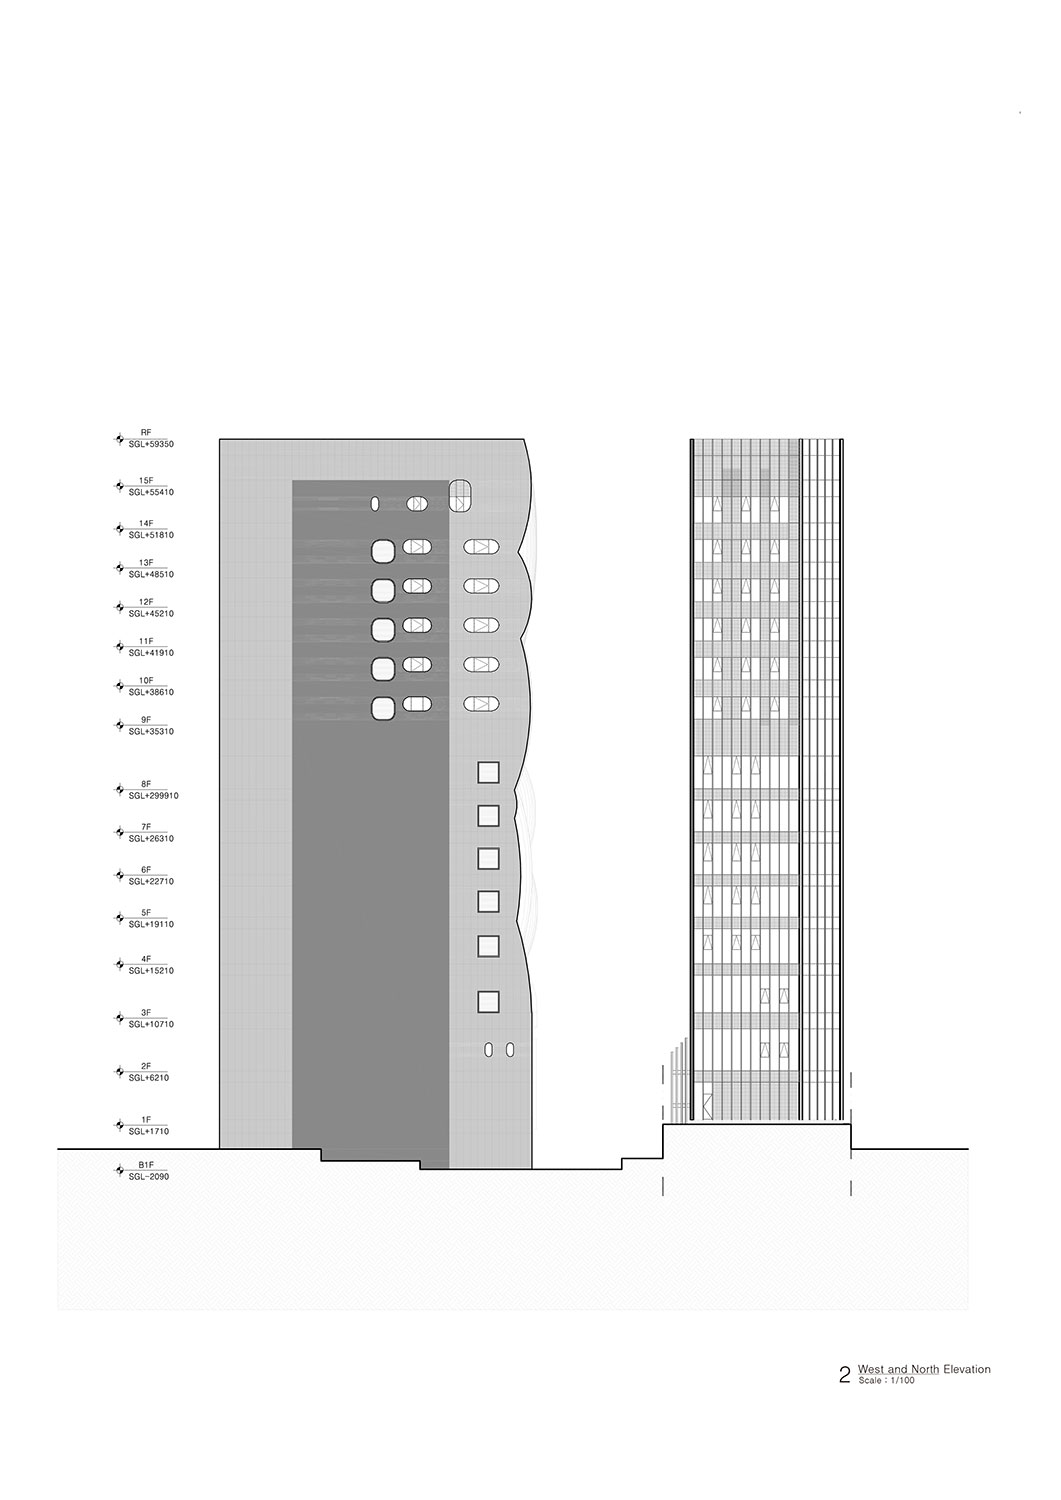 West and North Elevation Unsangdong Architects Co., Ltd.}